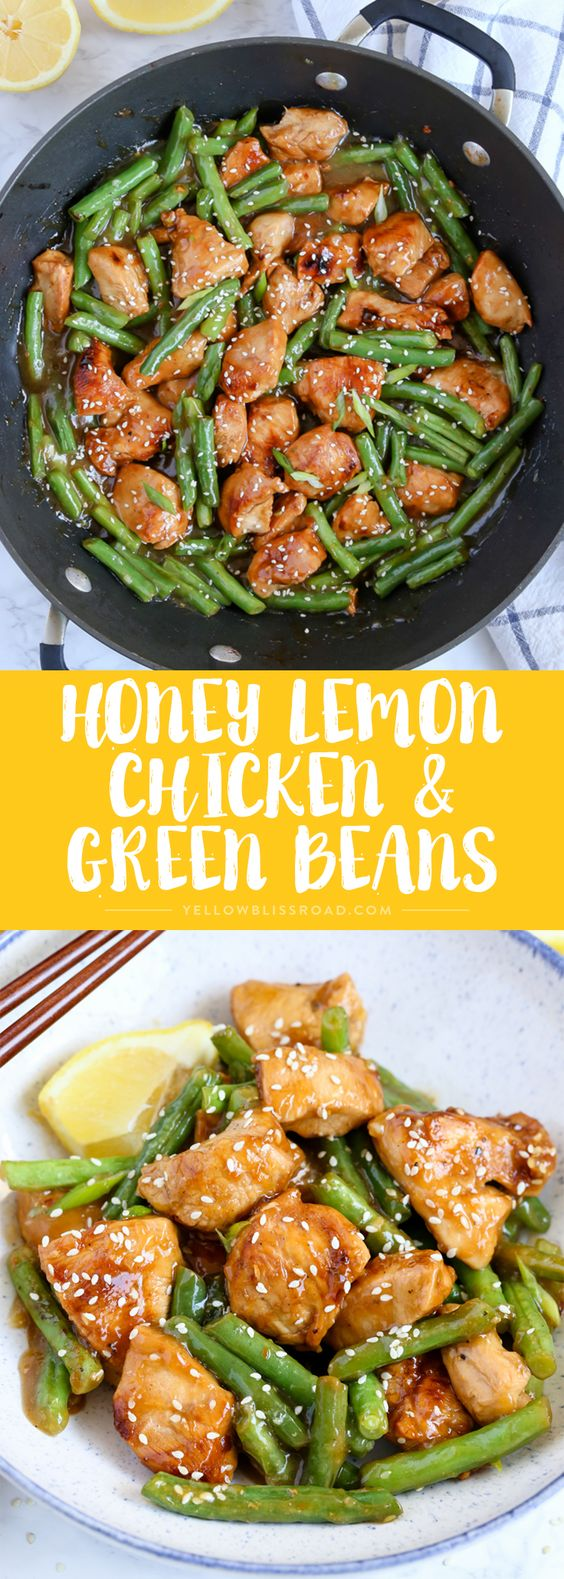 ★★★★☆ 2311 ratings ⋅ HONEY LEMON CHICKEN AND GREEN BEANS STIR FRY  #HEALTHYFOOD #EASYRECIPES #DINNER #LAUCH #DELICIOUS #EASY #HOLIDAYS #RECIPE #DESSERTS #SPECIALDIET #WORLDCUISINE #CAKE #APPETIZERS #HEALTHYRECIPES #DRINKS #COOKINGMETHOD #ITALIANRECIPES #MEAT #VEGANRECIPES #COOKIES #PASTA #FRUIT #SALAD #SOUPAPPETIZERS #NONALCOHOLICDRINKS #MEALPLANNING #VEGETABLES #SOUP #PASTRY #CHOCOLATE #DAIRY #ALCOHOLICDRINKS #BULGURSALAD #BAKING #SNACKS #BEEFRECIPES #MEATAPPETIZERS #MEXICANRECIPES #BREAD #ASIANRECIPES #SEAFOODAPPETIZERS #MUFFINS #BREAKFASTANDBRUNCH #CONDIMENTS #CUPCAKES #CHEESE #CHICKENRECIPES #PIE #COFFEE #NOBAKEDESSERTS #HEALTHYSNACKS #SEAFOOD #GRAIN #LUNCHESDINNERS #MEXICAN #QUICKBREAD #LIQUOR